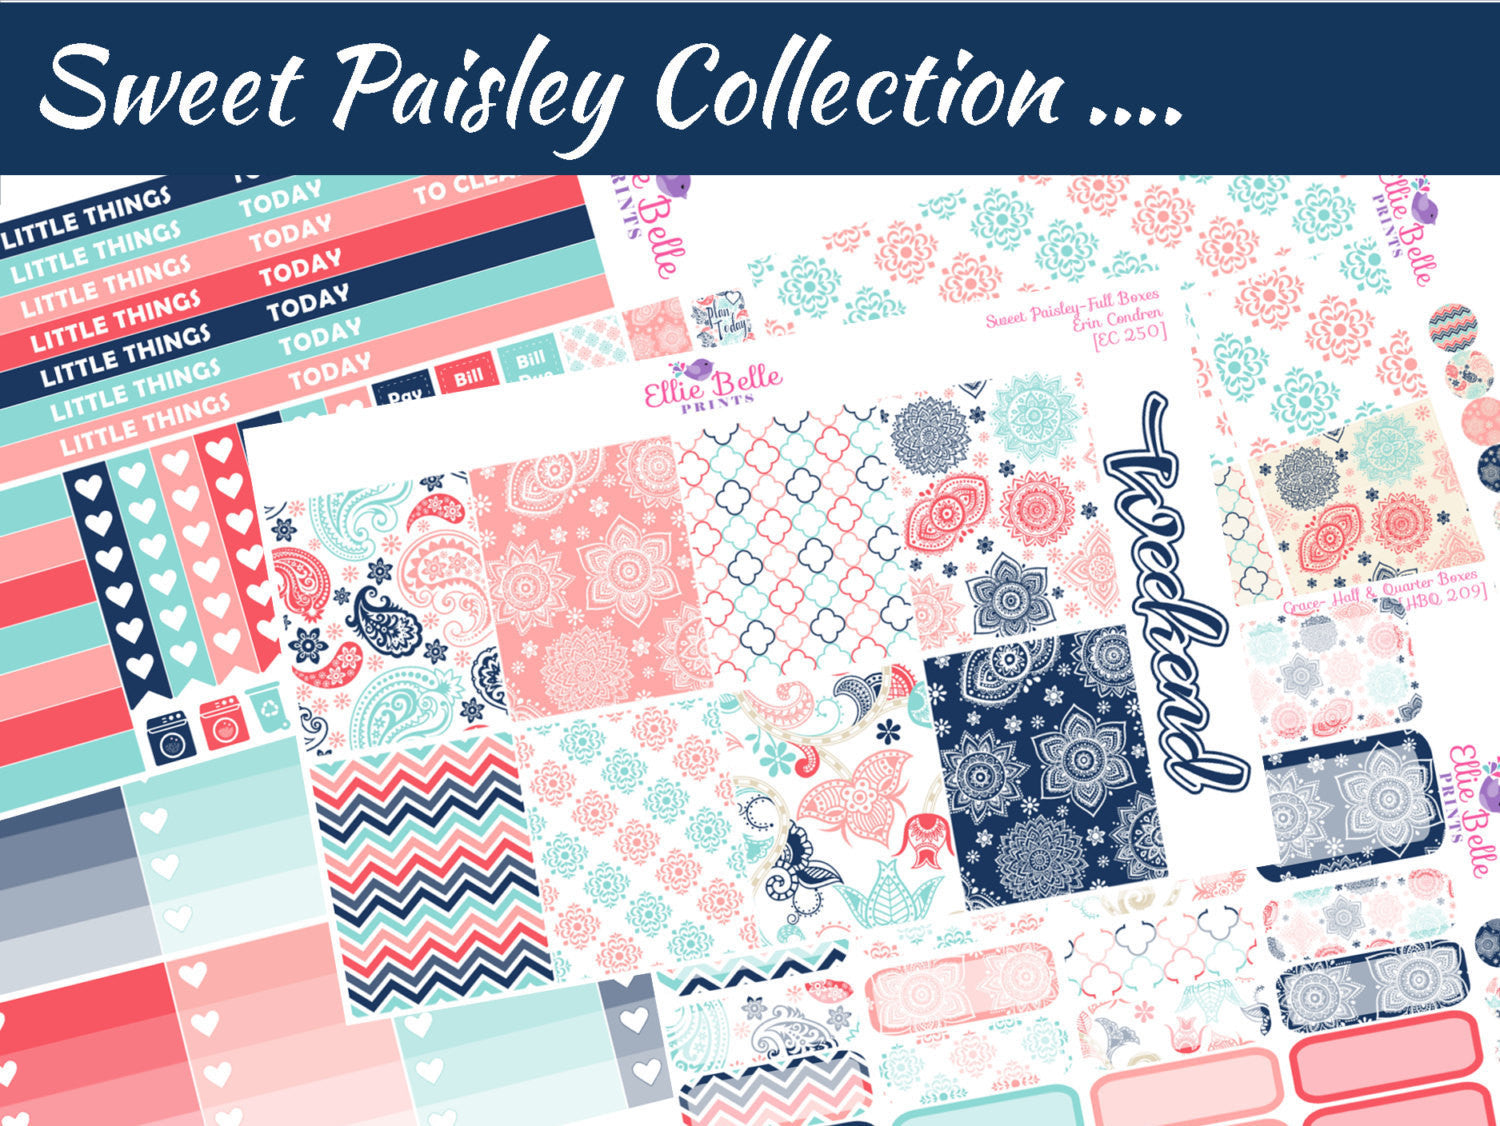 SWEET PAISLEY COLLECTION - Vertical Weekly Planner Kit [250]